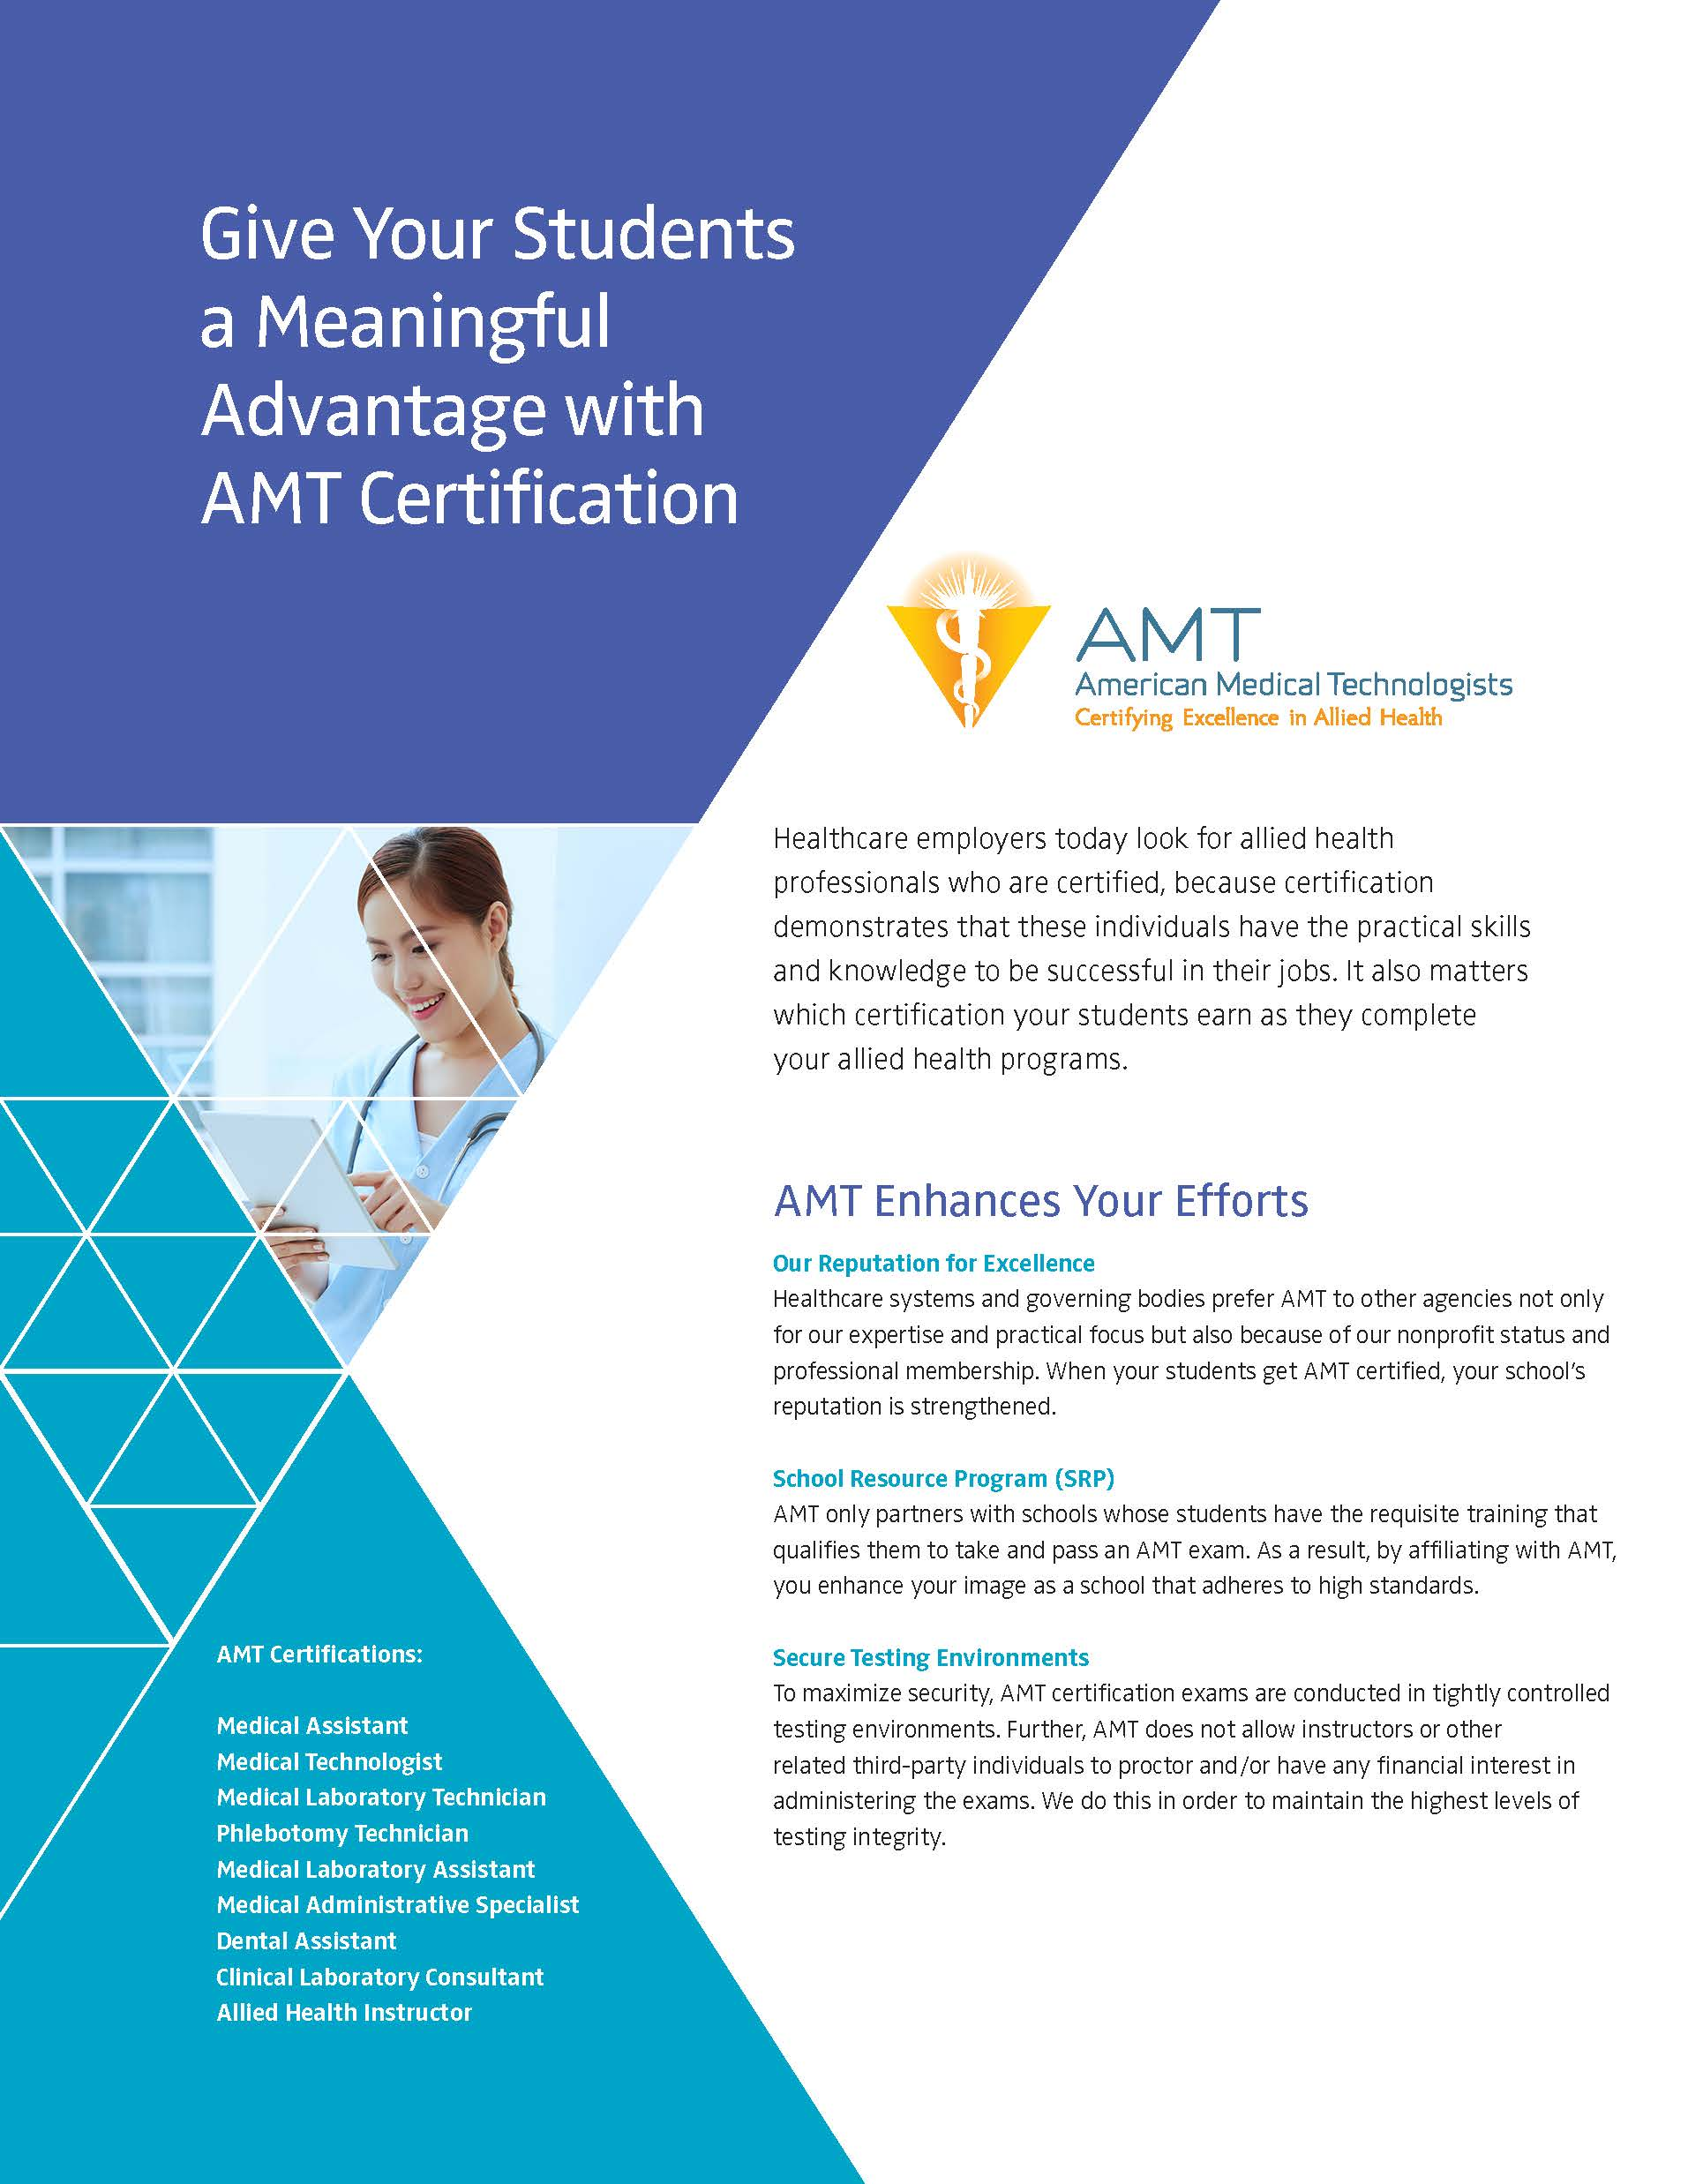 A Student Guide To Amt Certification User Guide Manual That Easy